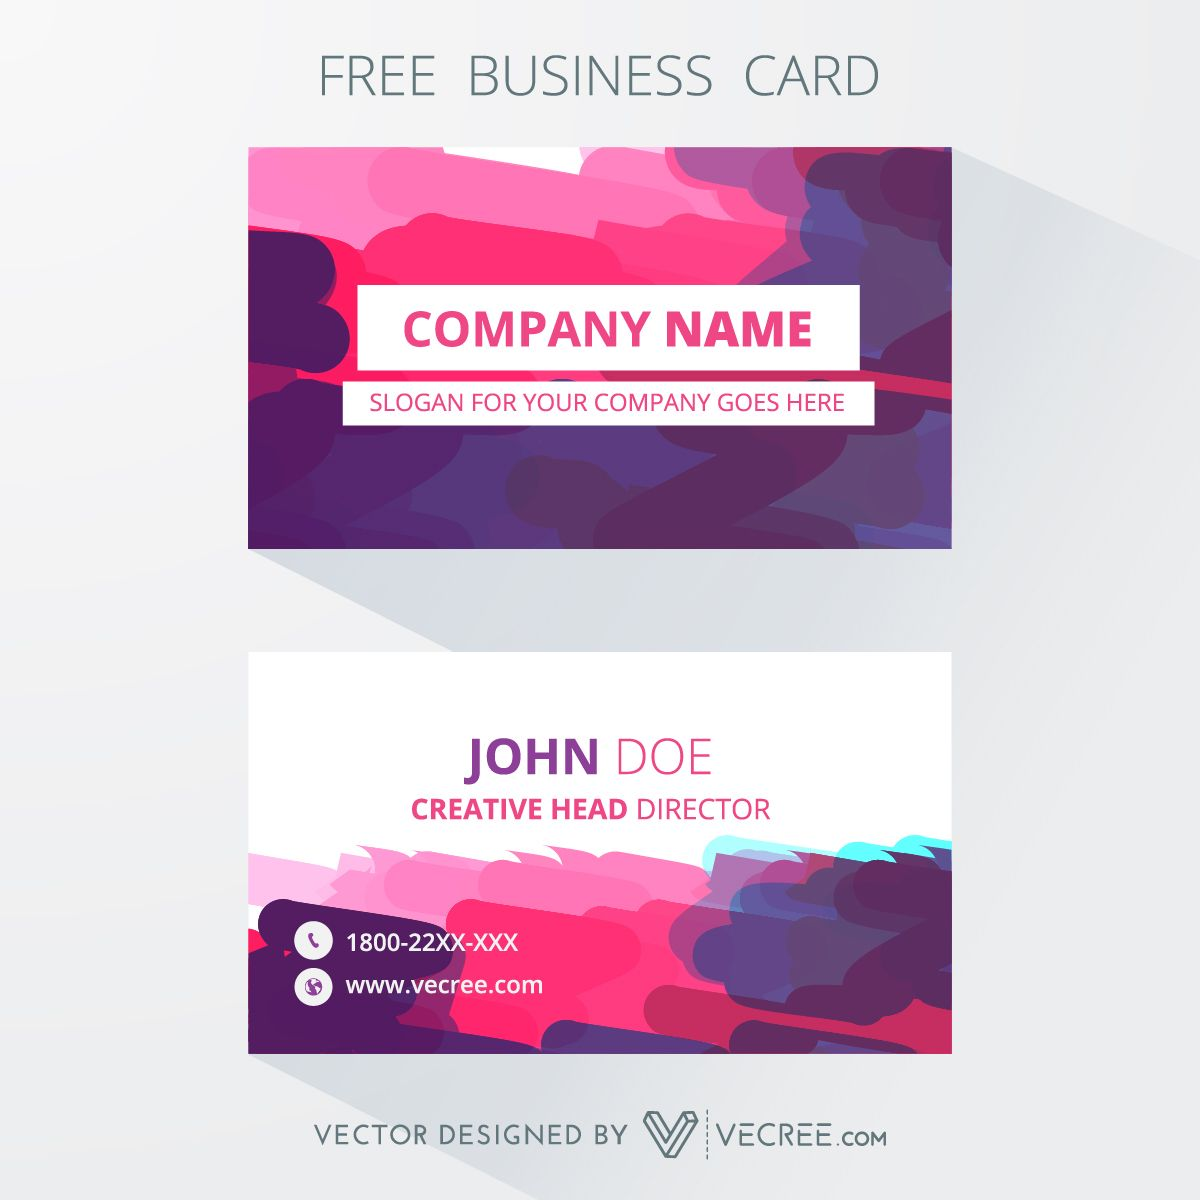 Print Ready Business Card Design With Colorful Background Free ...